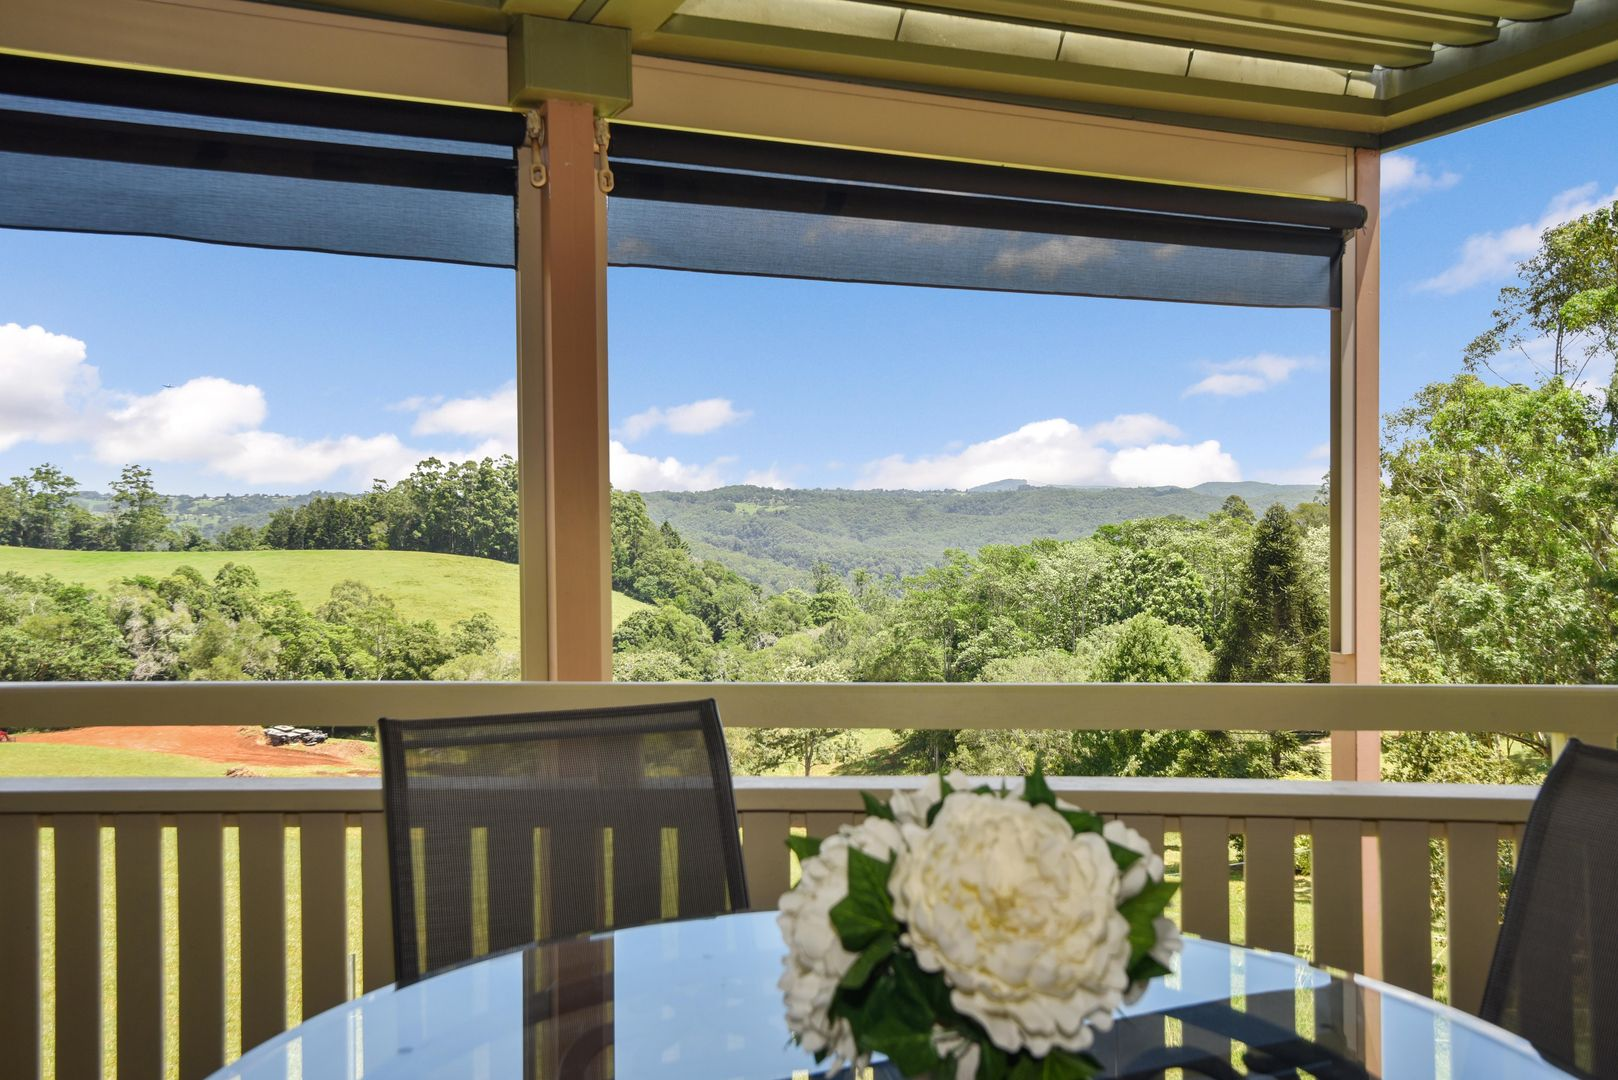 152-166 Western Ave, Montville QLD 4560, Image 1